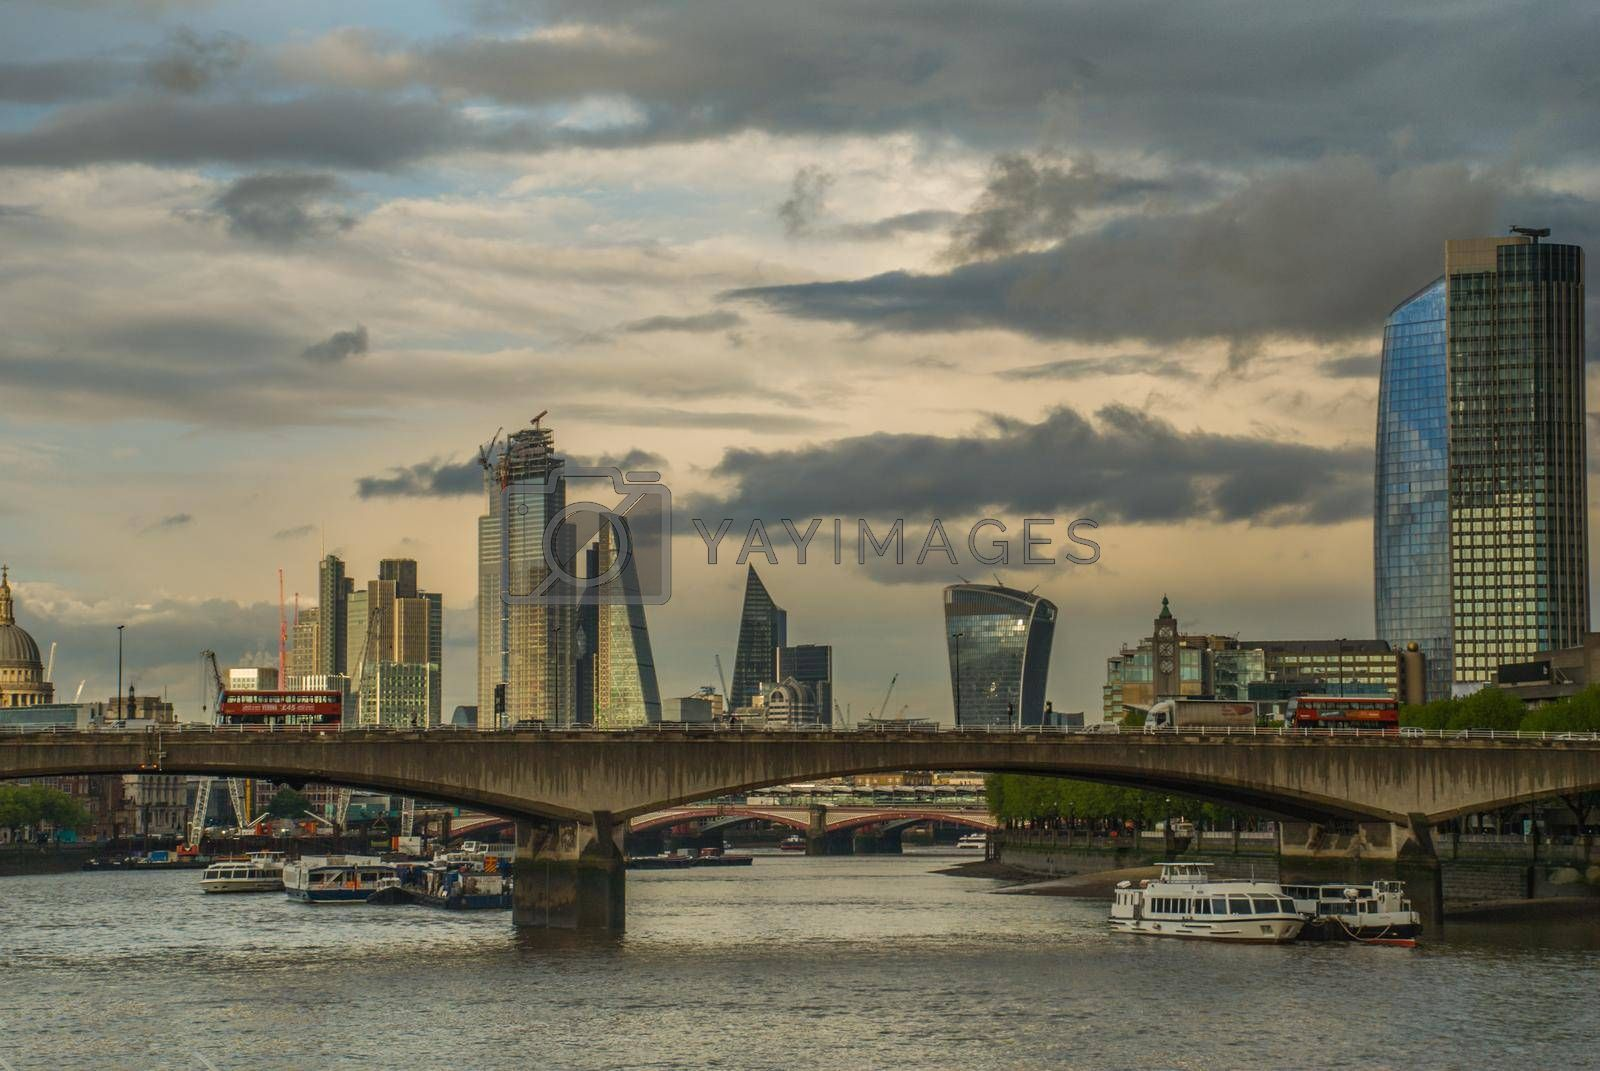 London, United Kingdom - April 17, 2019: London skyscrapers along the River Thames make the city a modern style.